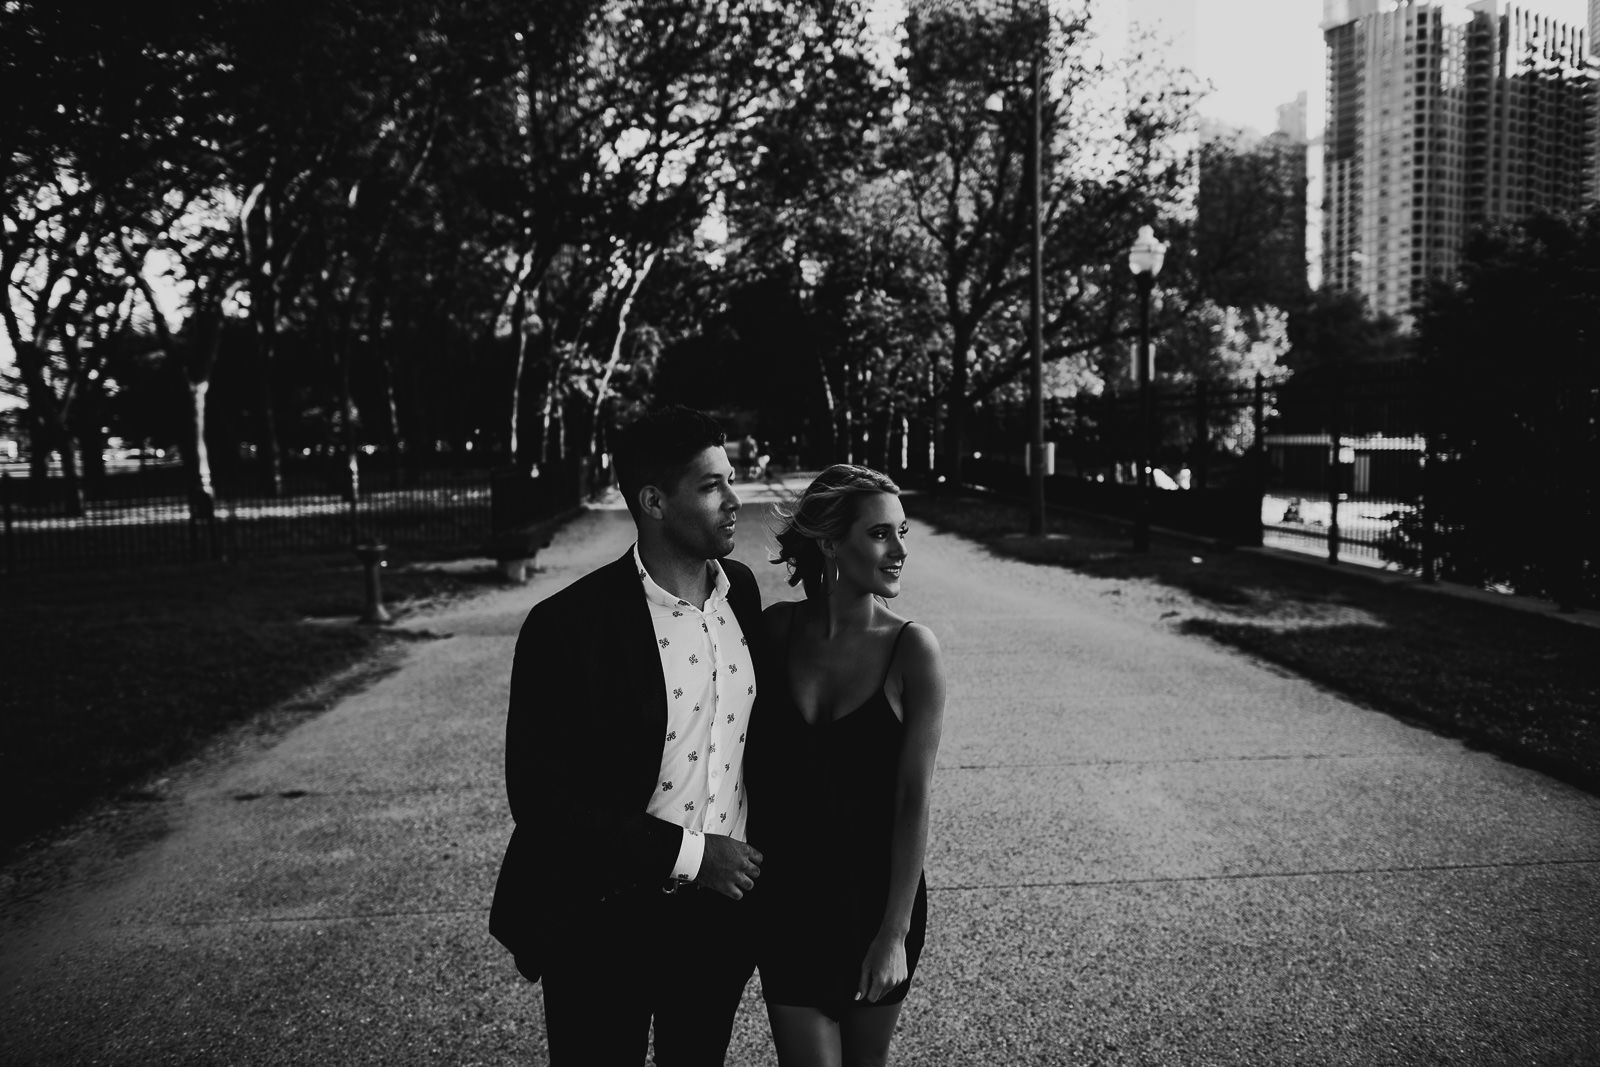 01 milton lee park black and white - Milton Lee Olive Park Surprise Proposal // Chris + Emma